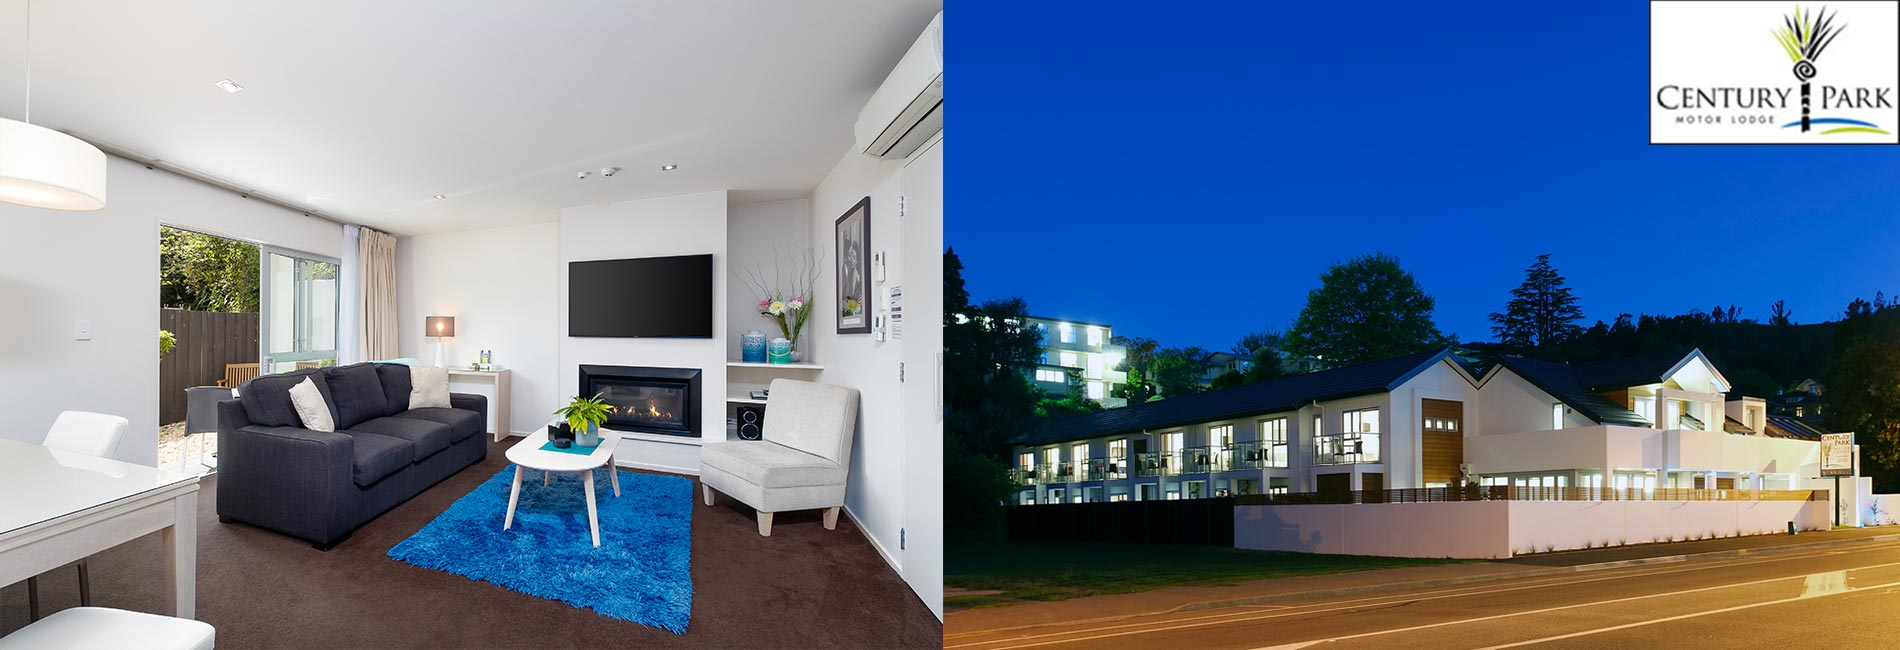 Internationally rated #1 Hotel in the South Pacific & New Zealand